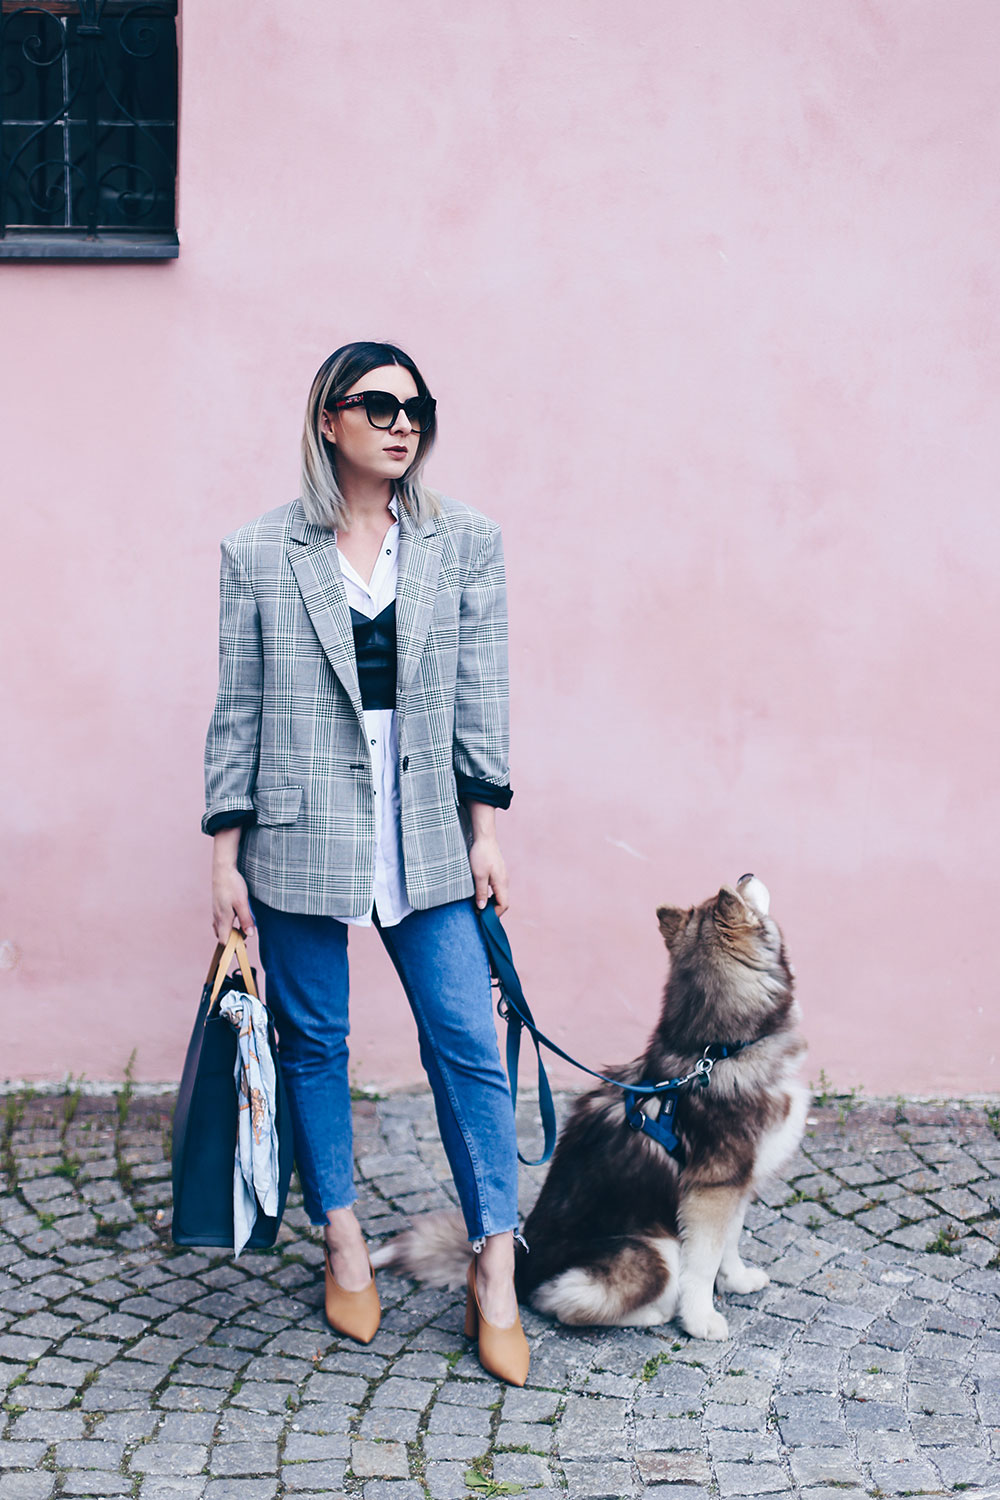 Mom Jeans Outfit, Oversize Blazer stylen, Pumps in Nude, Wardrobe Essentials, sibirischer Husky, Bralet kombinieren, Business Casual Chic, Modeblog, Fashion Blog, Style Blog, Outfit Blog, Mode Magazin, Fashion Magazin, www.whoismocca.com